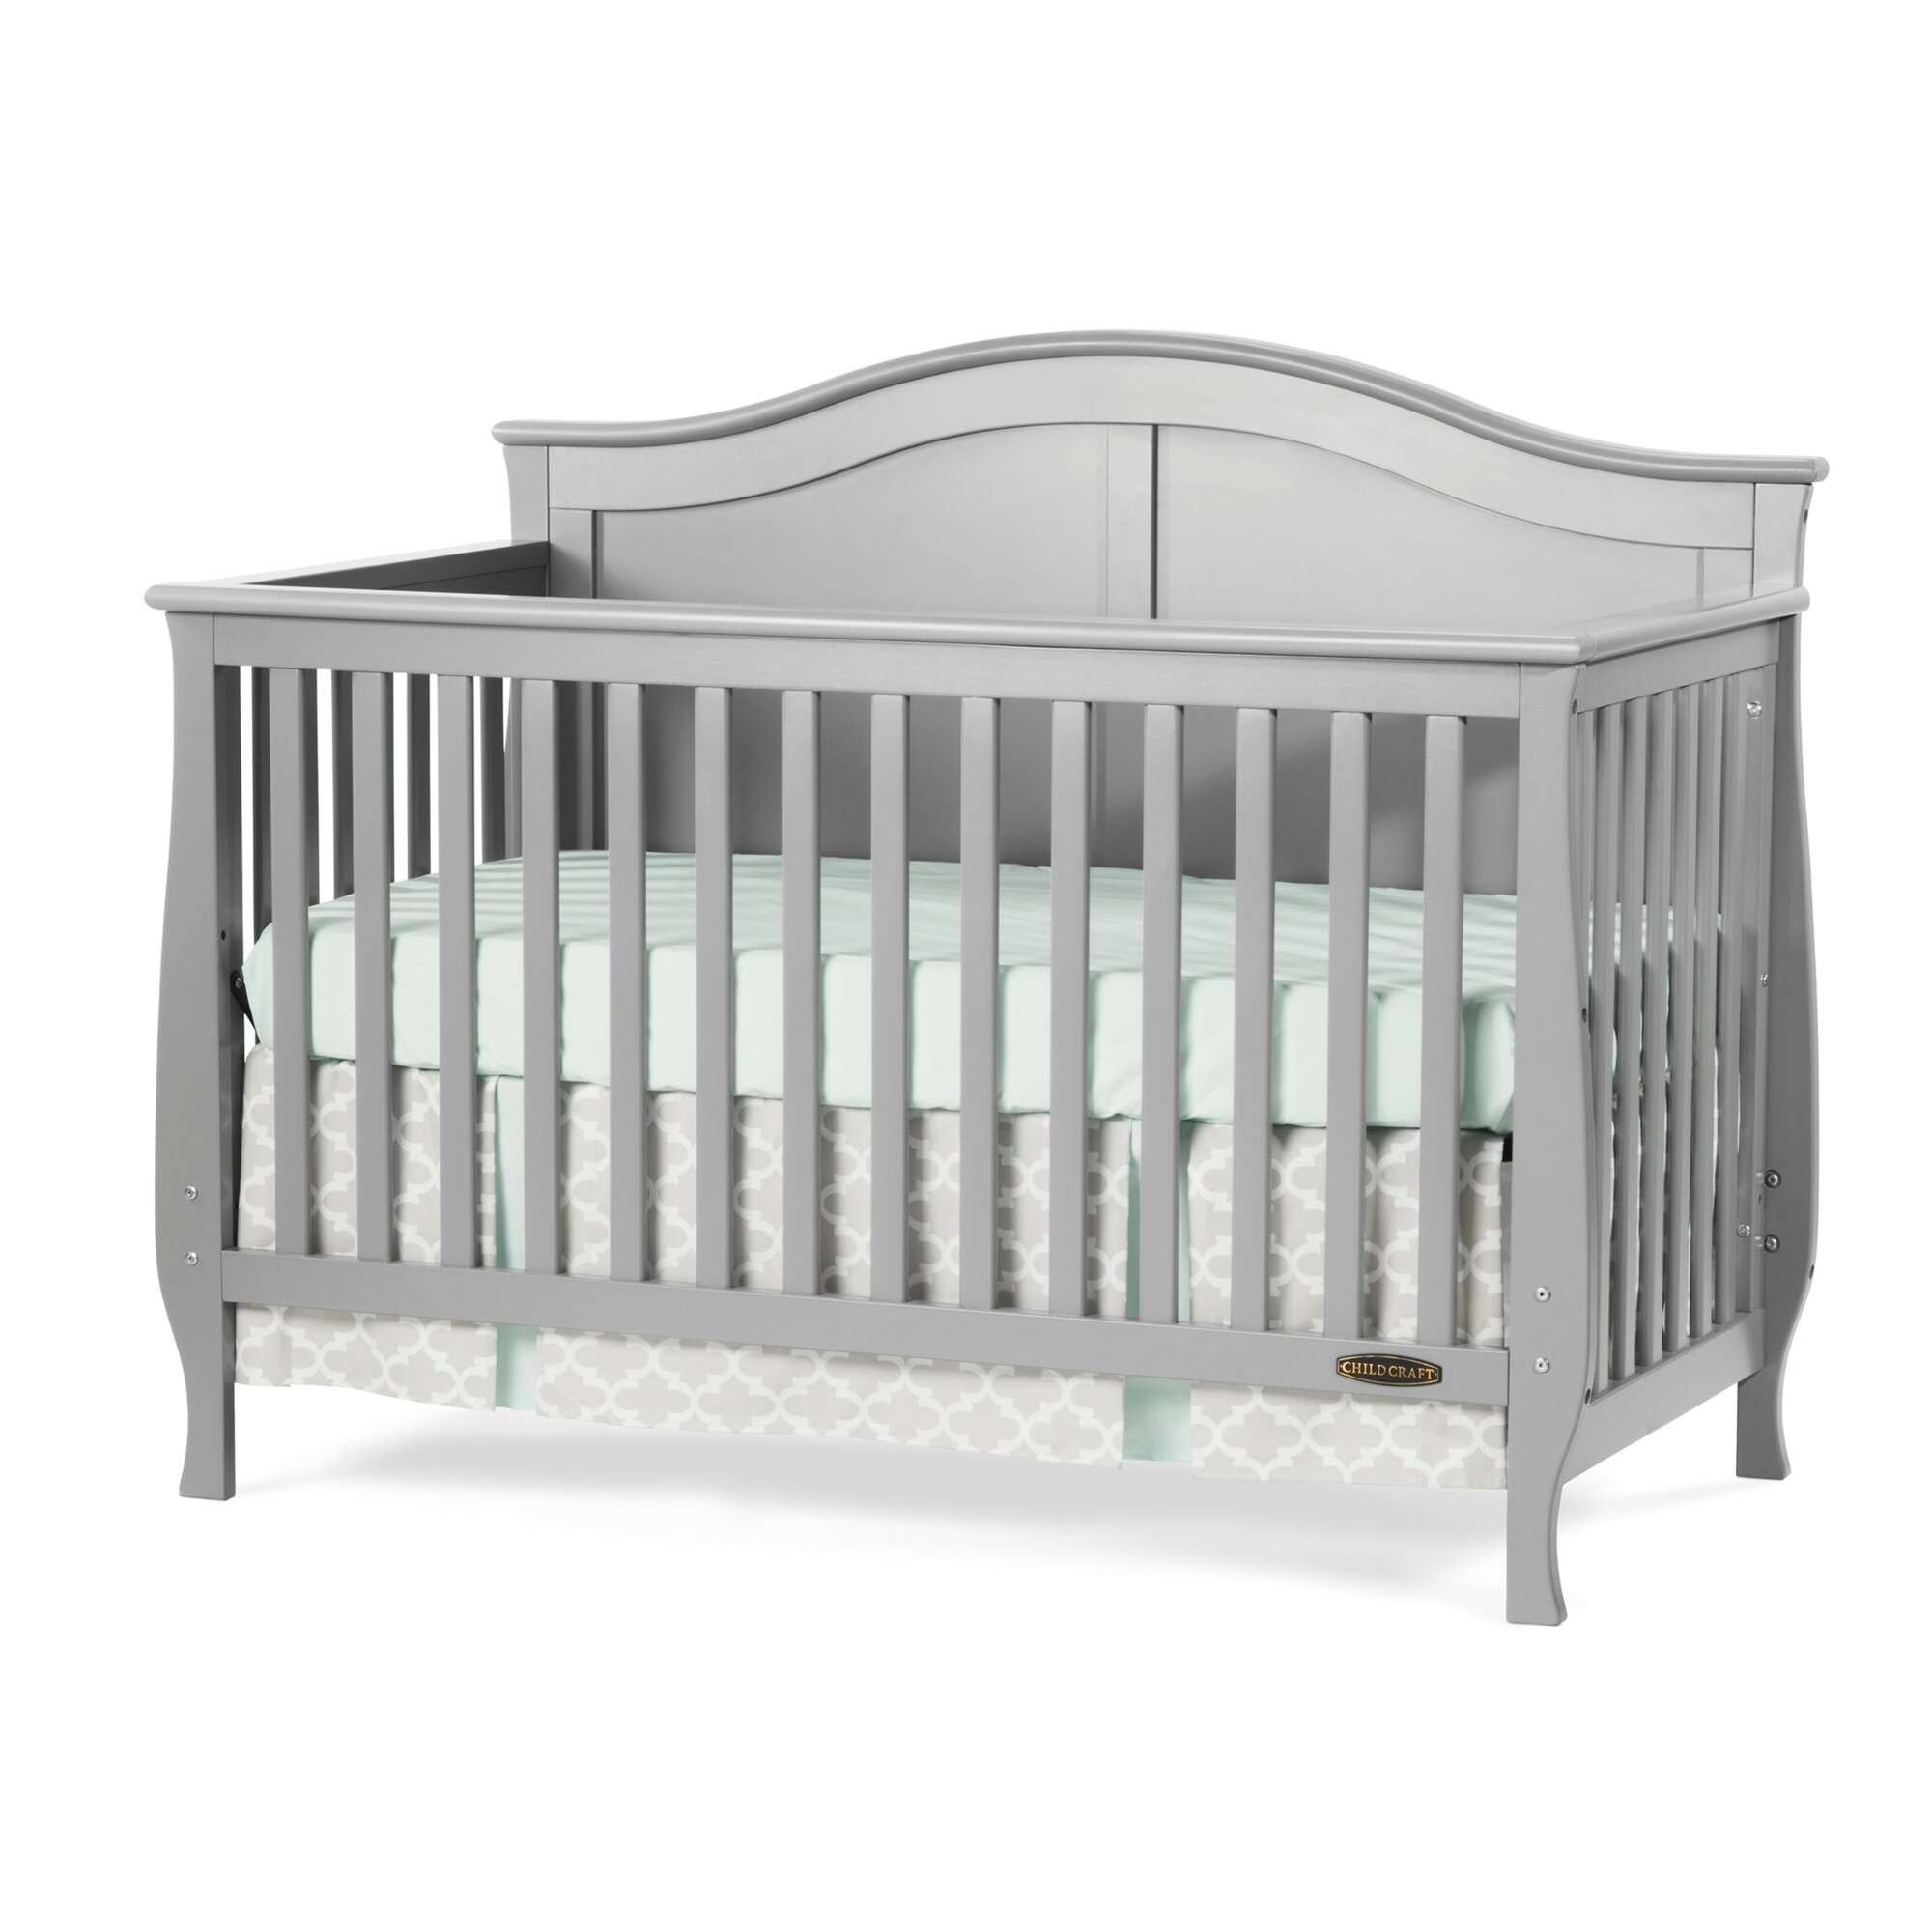 Child craft camden 4 in 1 convertible crib reviews wayfair for Child craft crib reviews